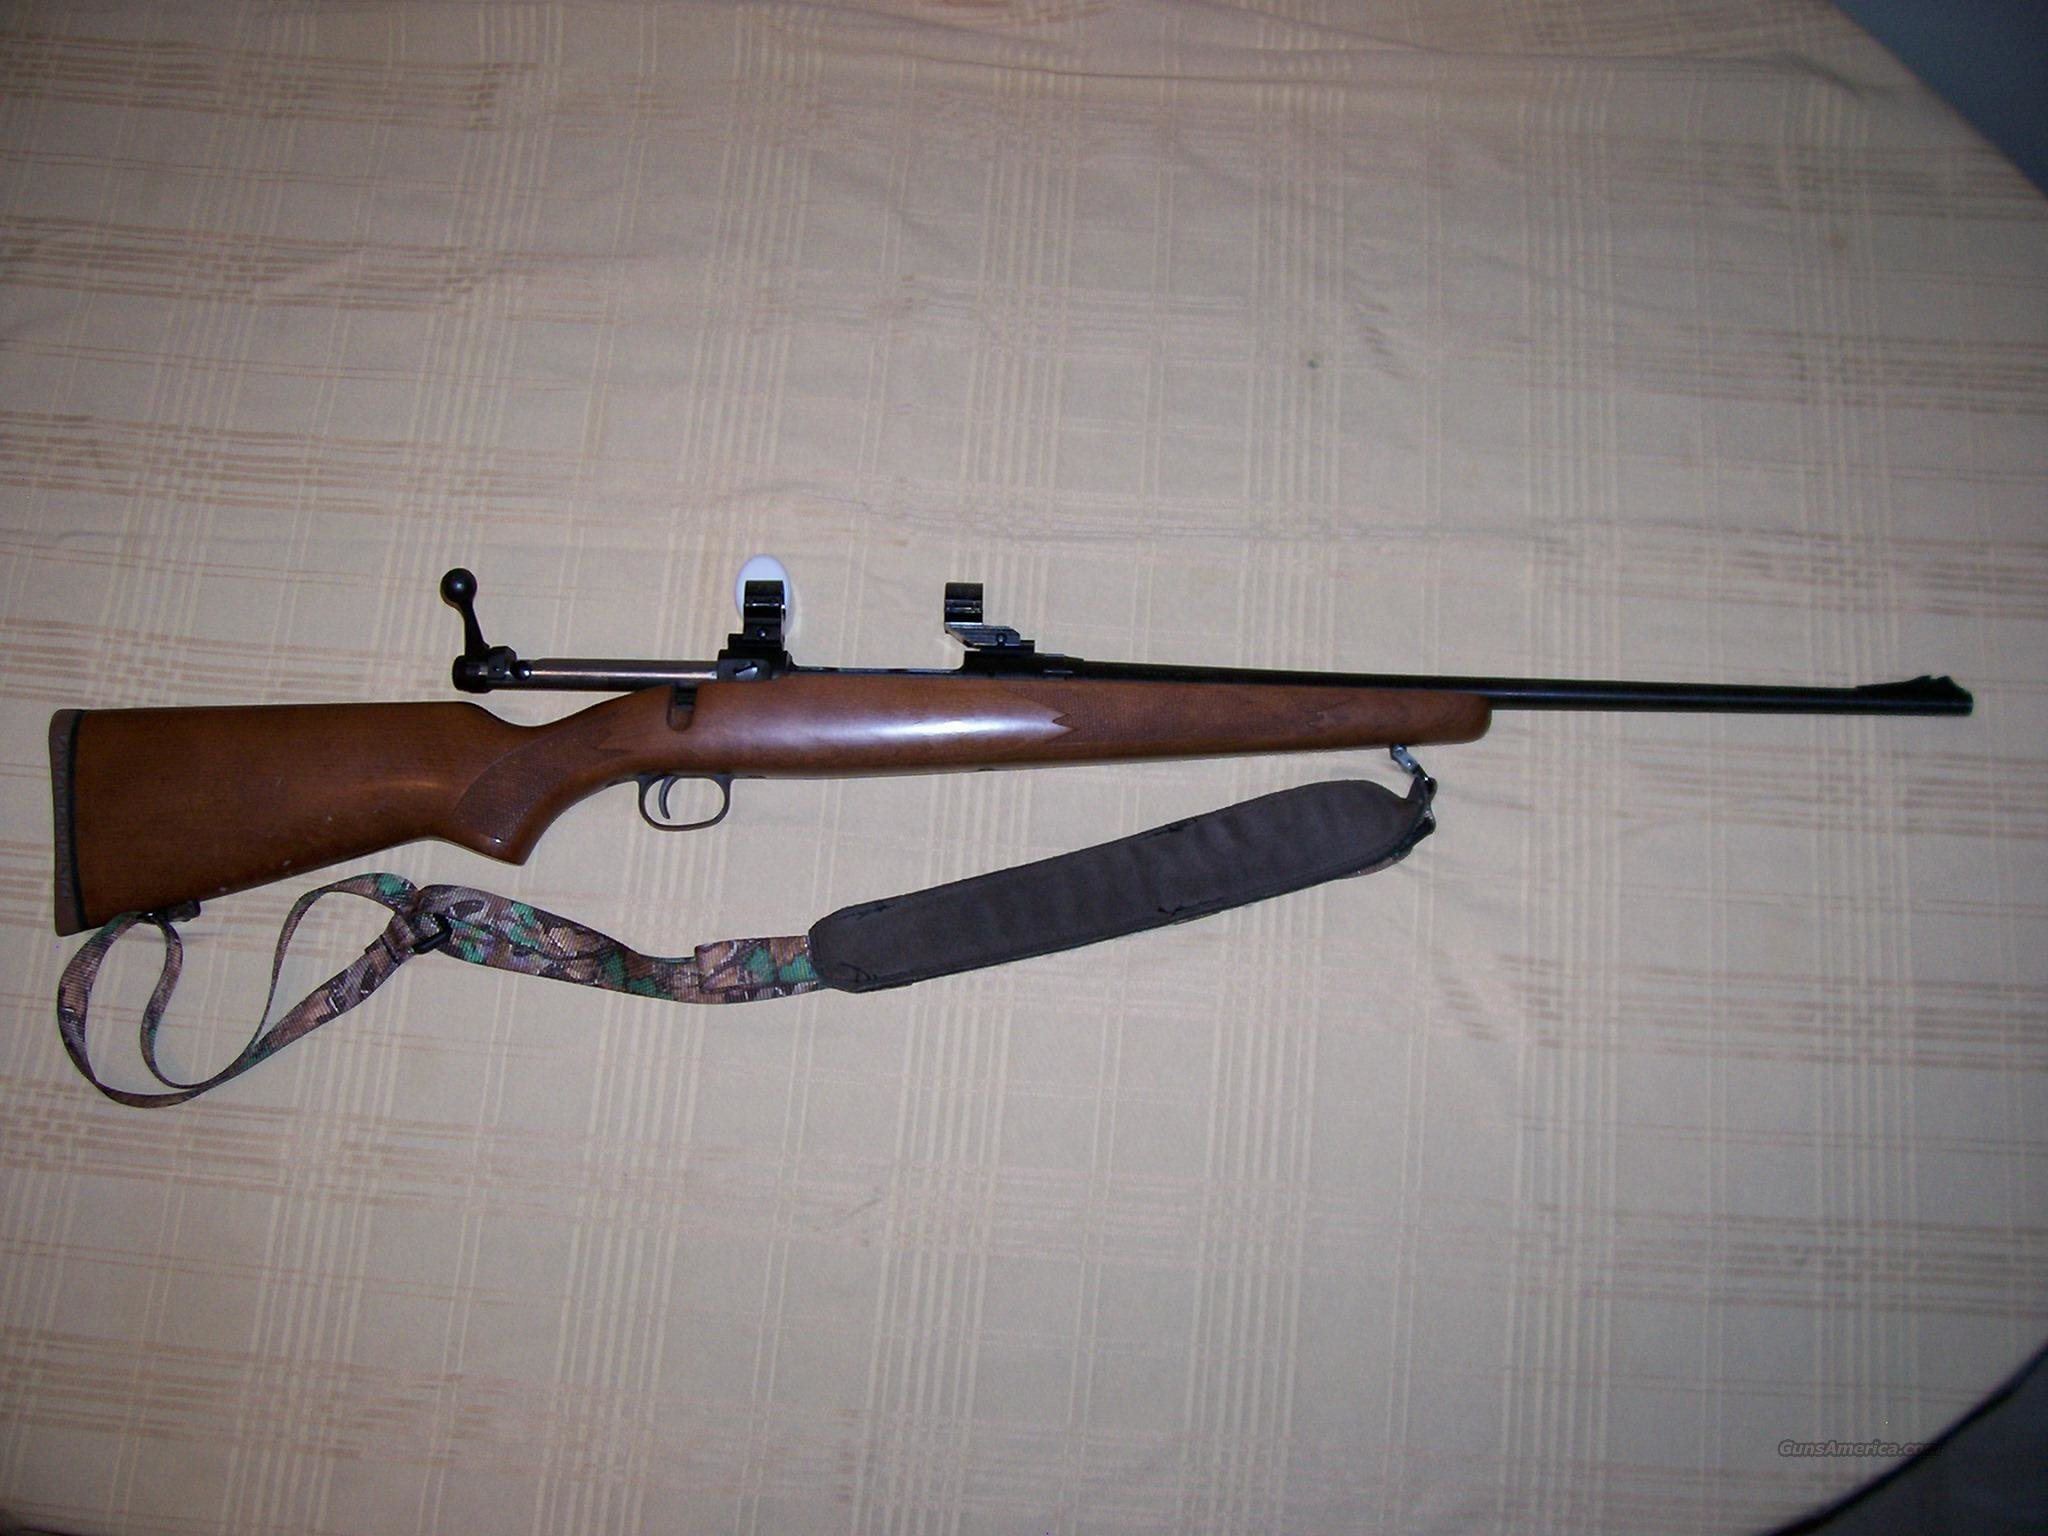 111GHNS Walnut/Blue 25-06 used  Guns > Rifles > Savage Rifles > Standard Bolt Action > Sporting